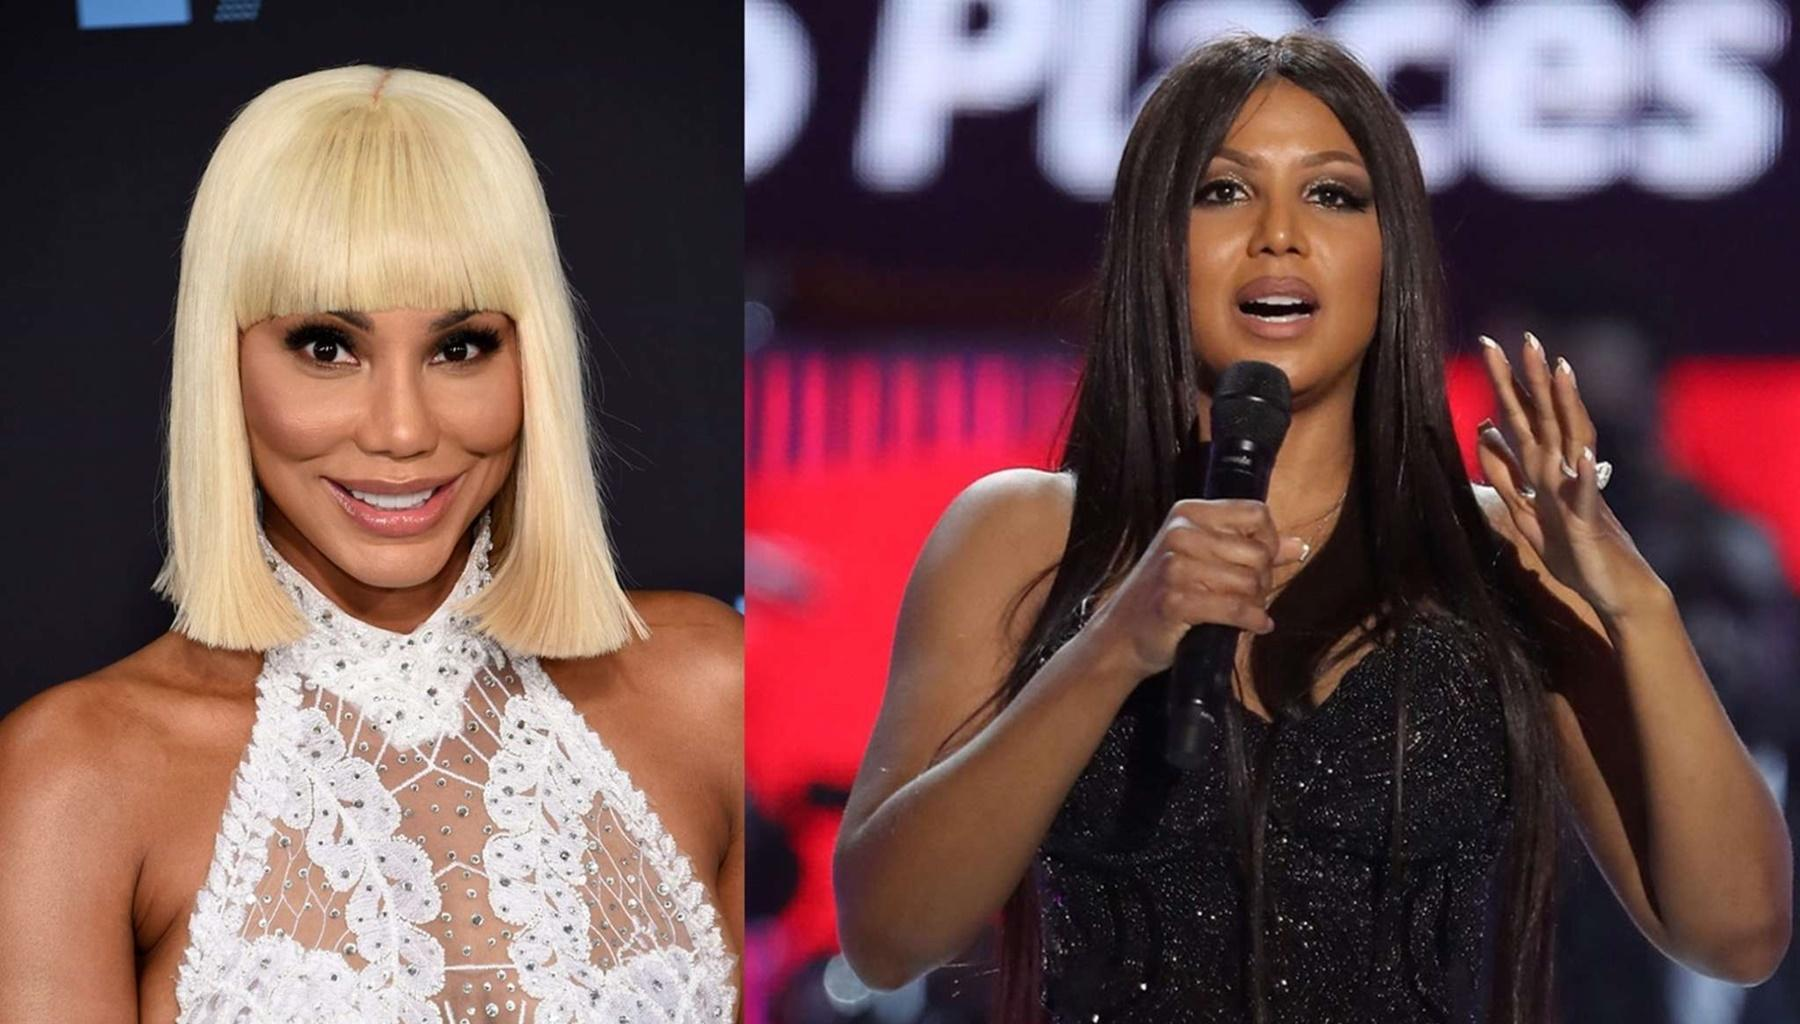 Toni Braxton Looks Ageless As She Parties With Tamar In Stunning Photos -- Fans Are Busy Debating Vincent Herbert's Ex's Plastic Surgery